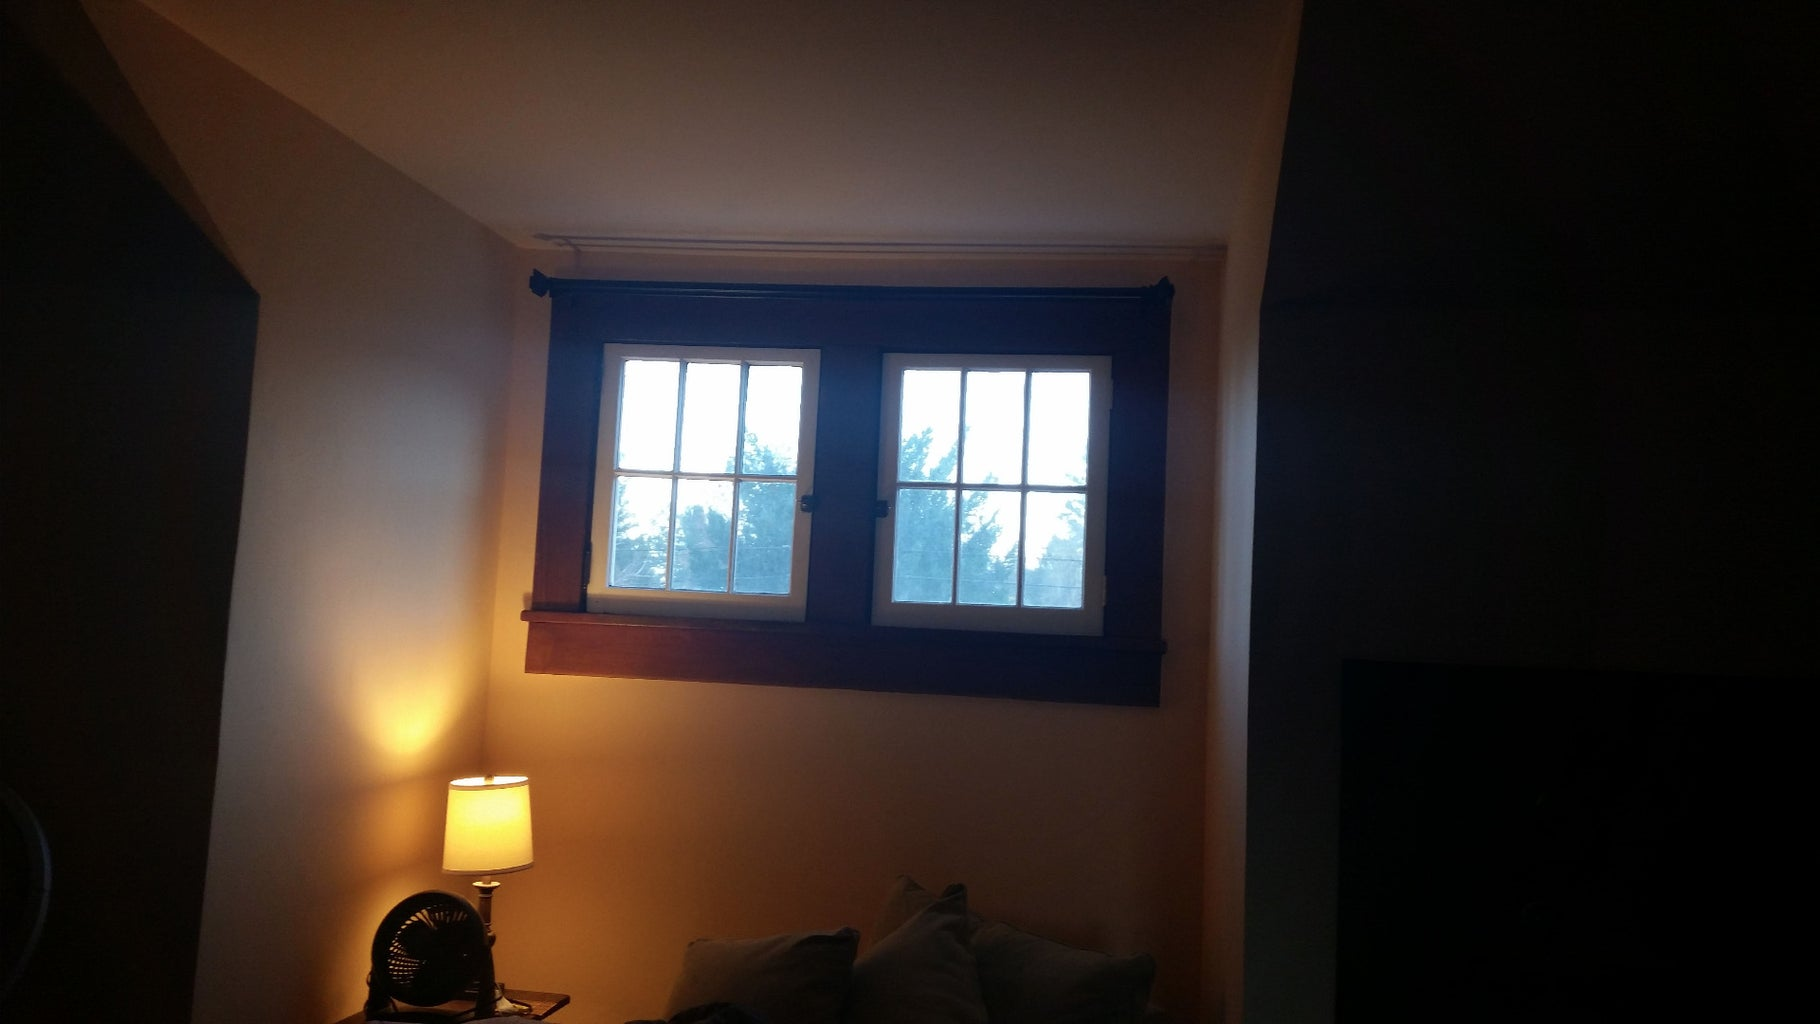 Measure Window Width and Height